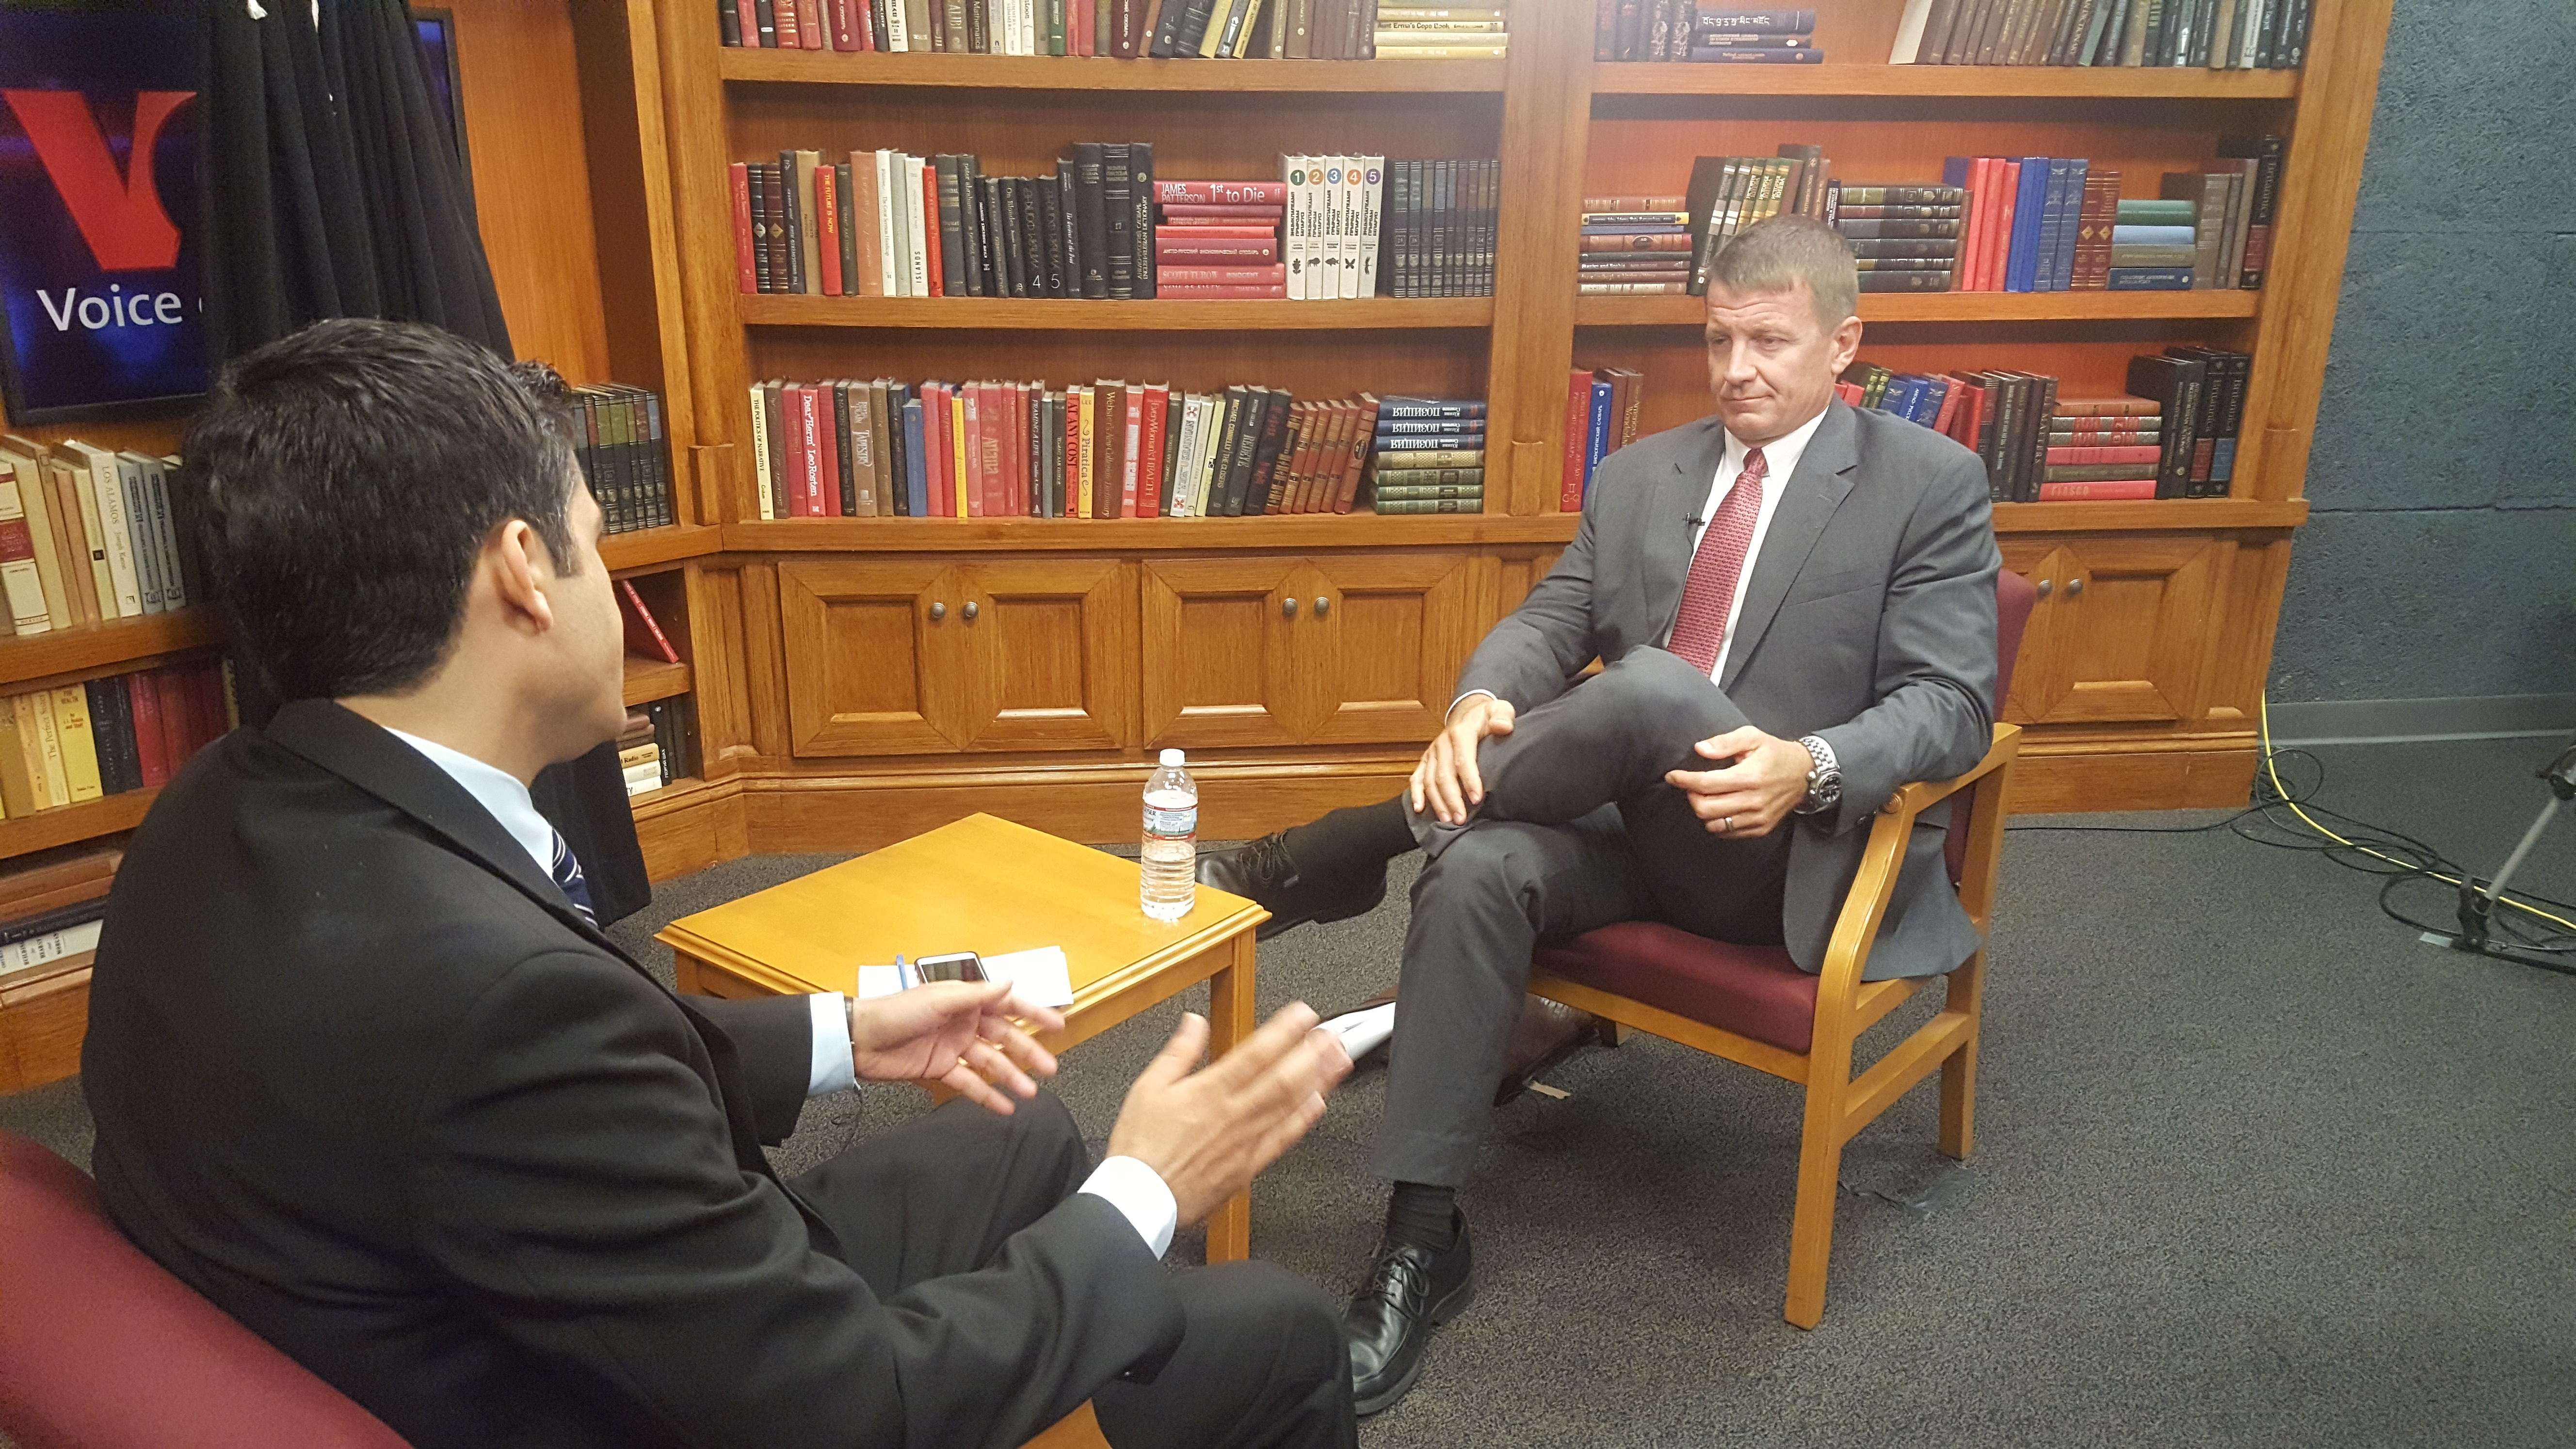 Ayub Khawreen, left, of VOA's Afghan Service interviews Blackwater founder Erik Prince about his controversial proposal to privatize a large portion of the U.S. war in Afghanistan.